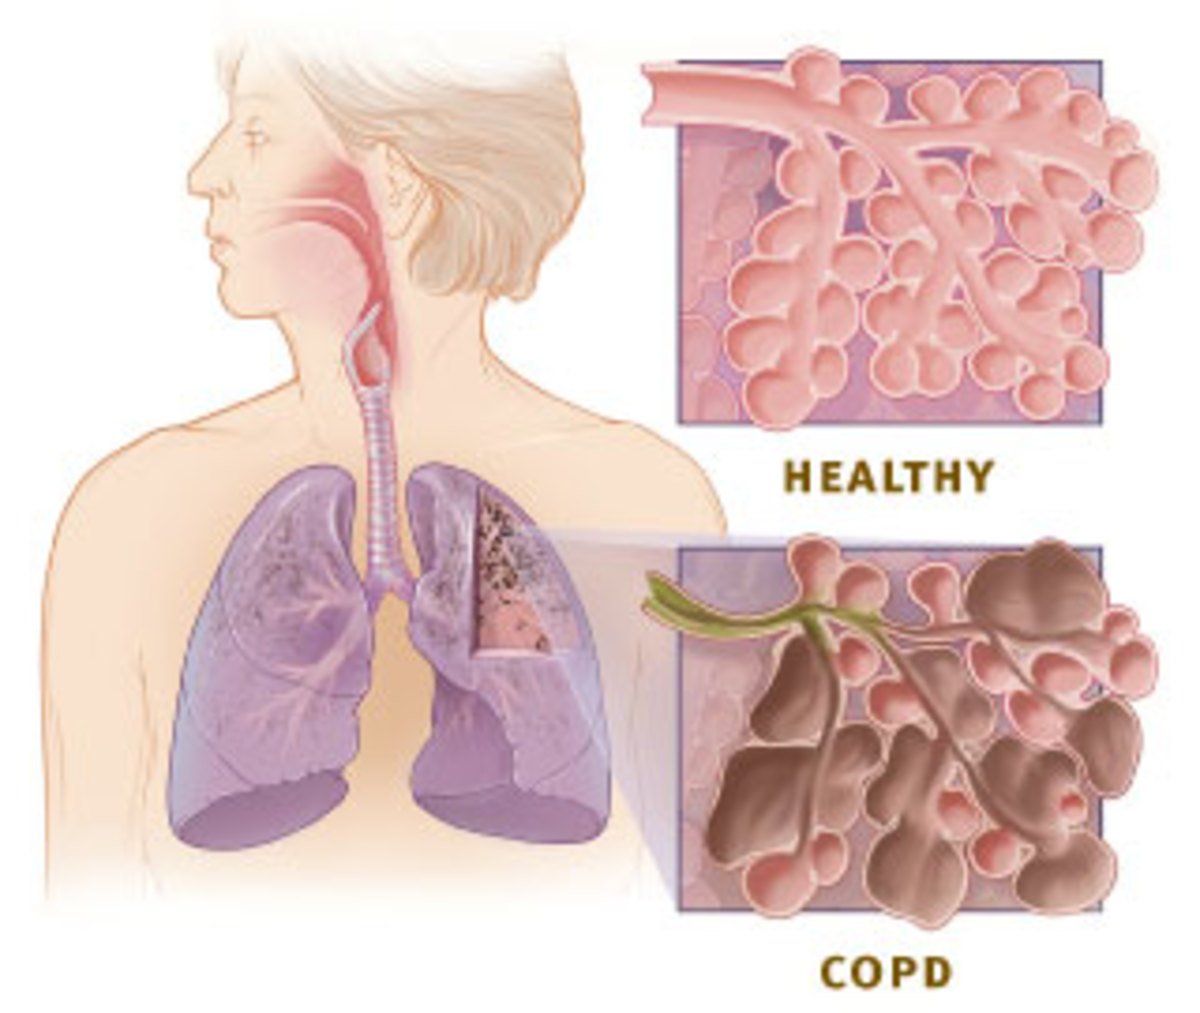 Healthy lung vs COPD lung